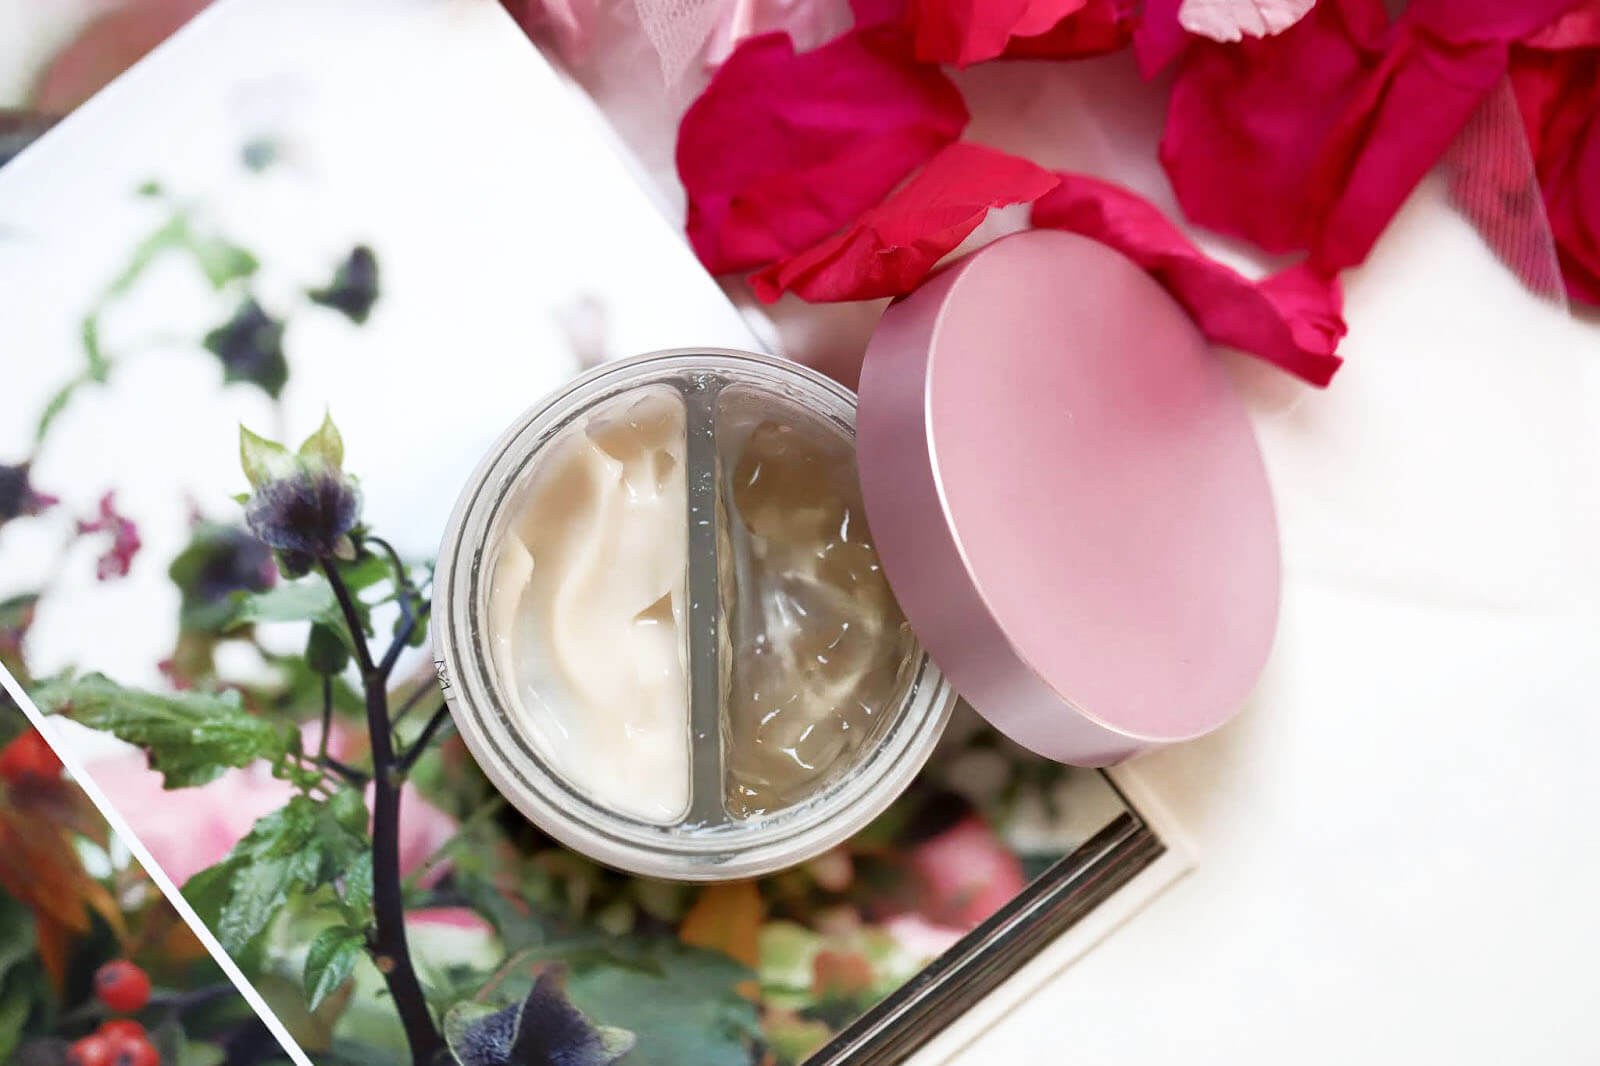 Fresh Masque Duo de Nuit A La Rose ingredients